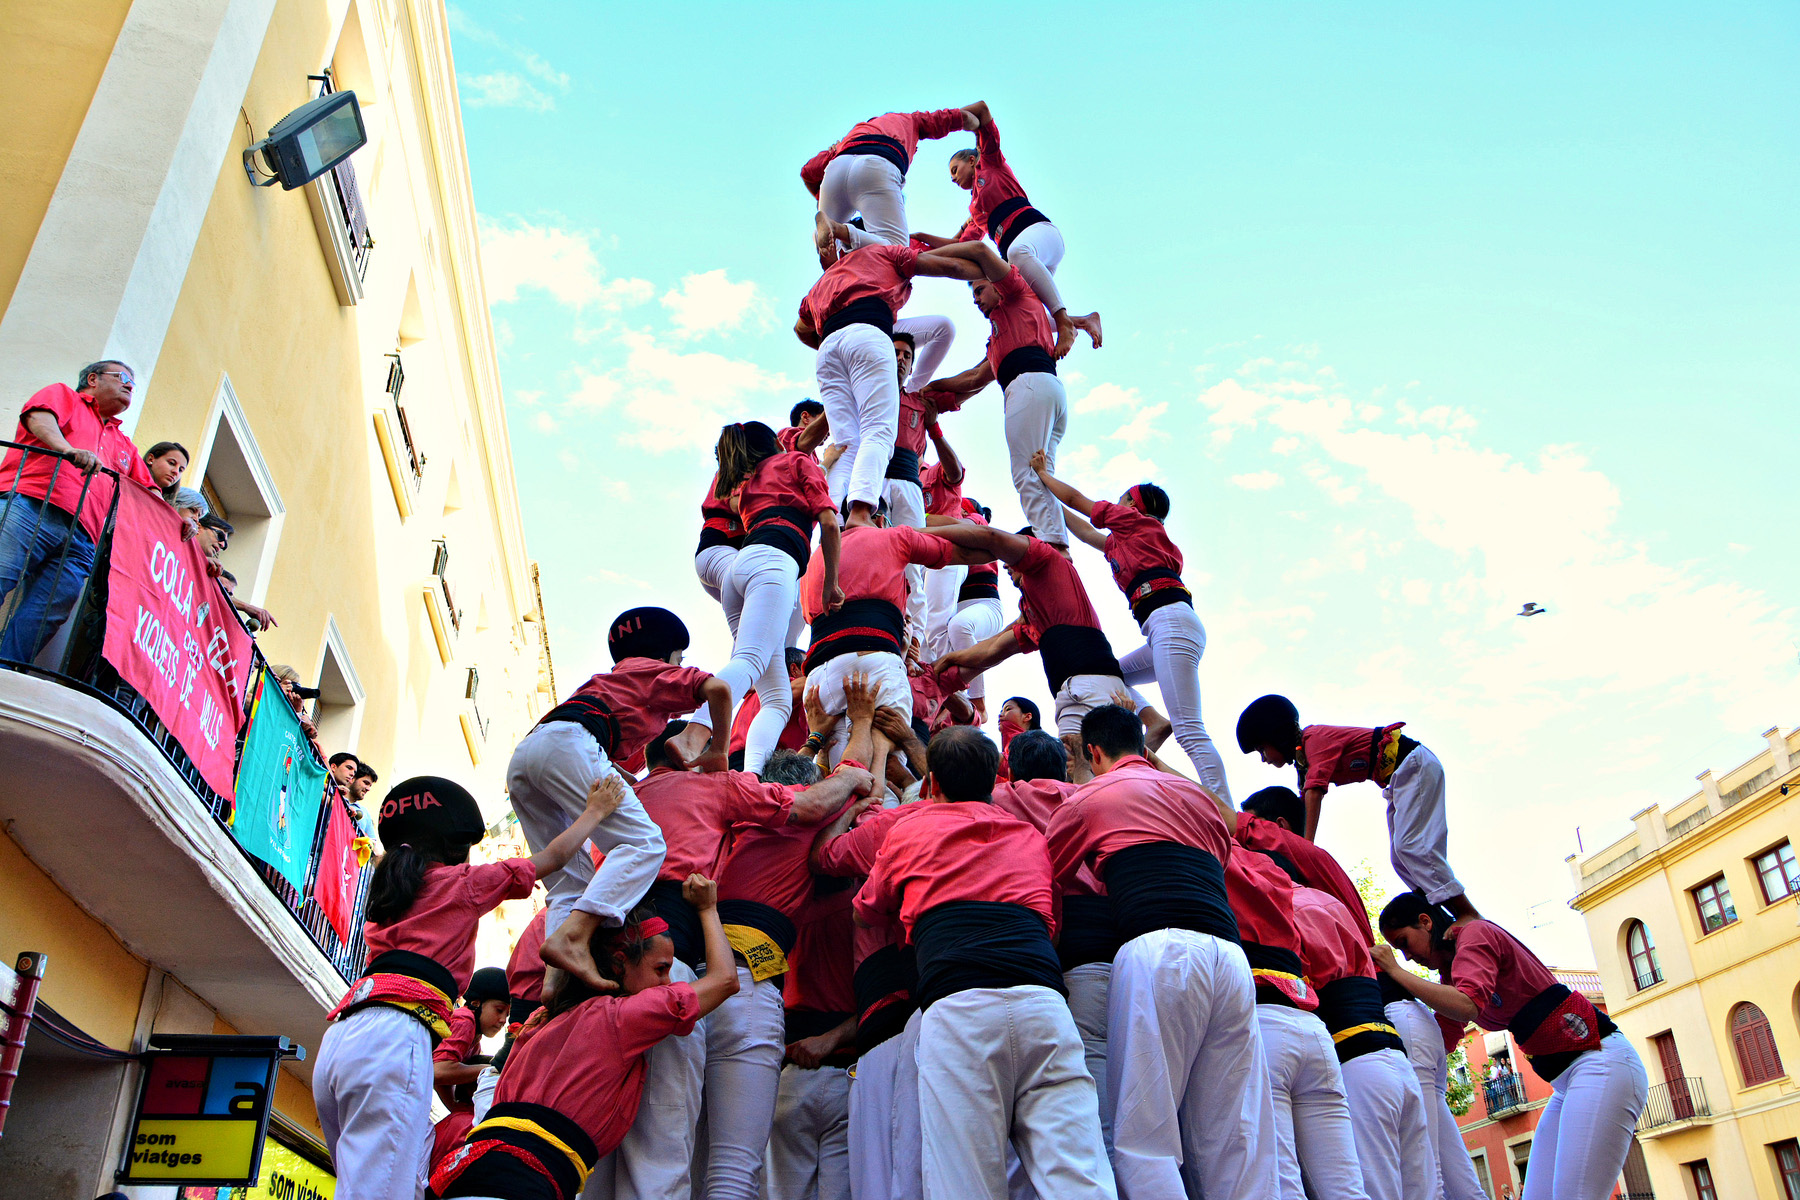 Catalan tradition of the human tower